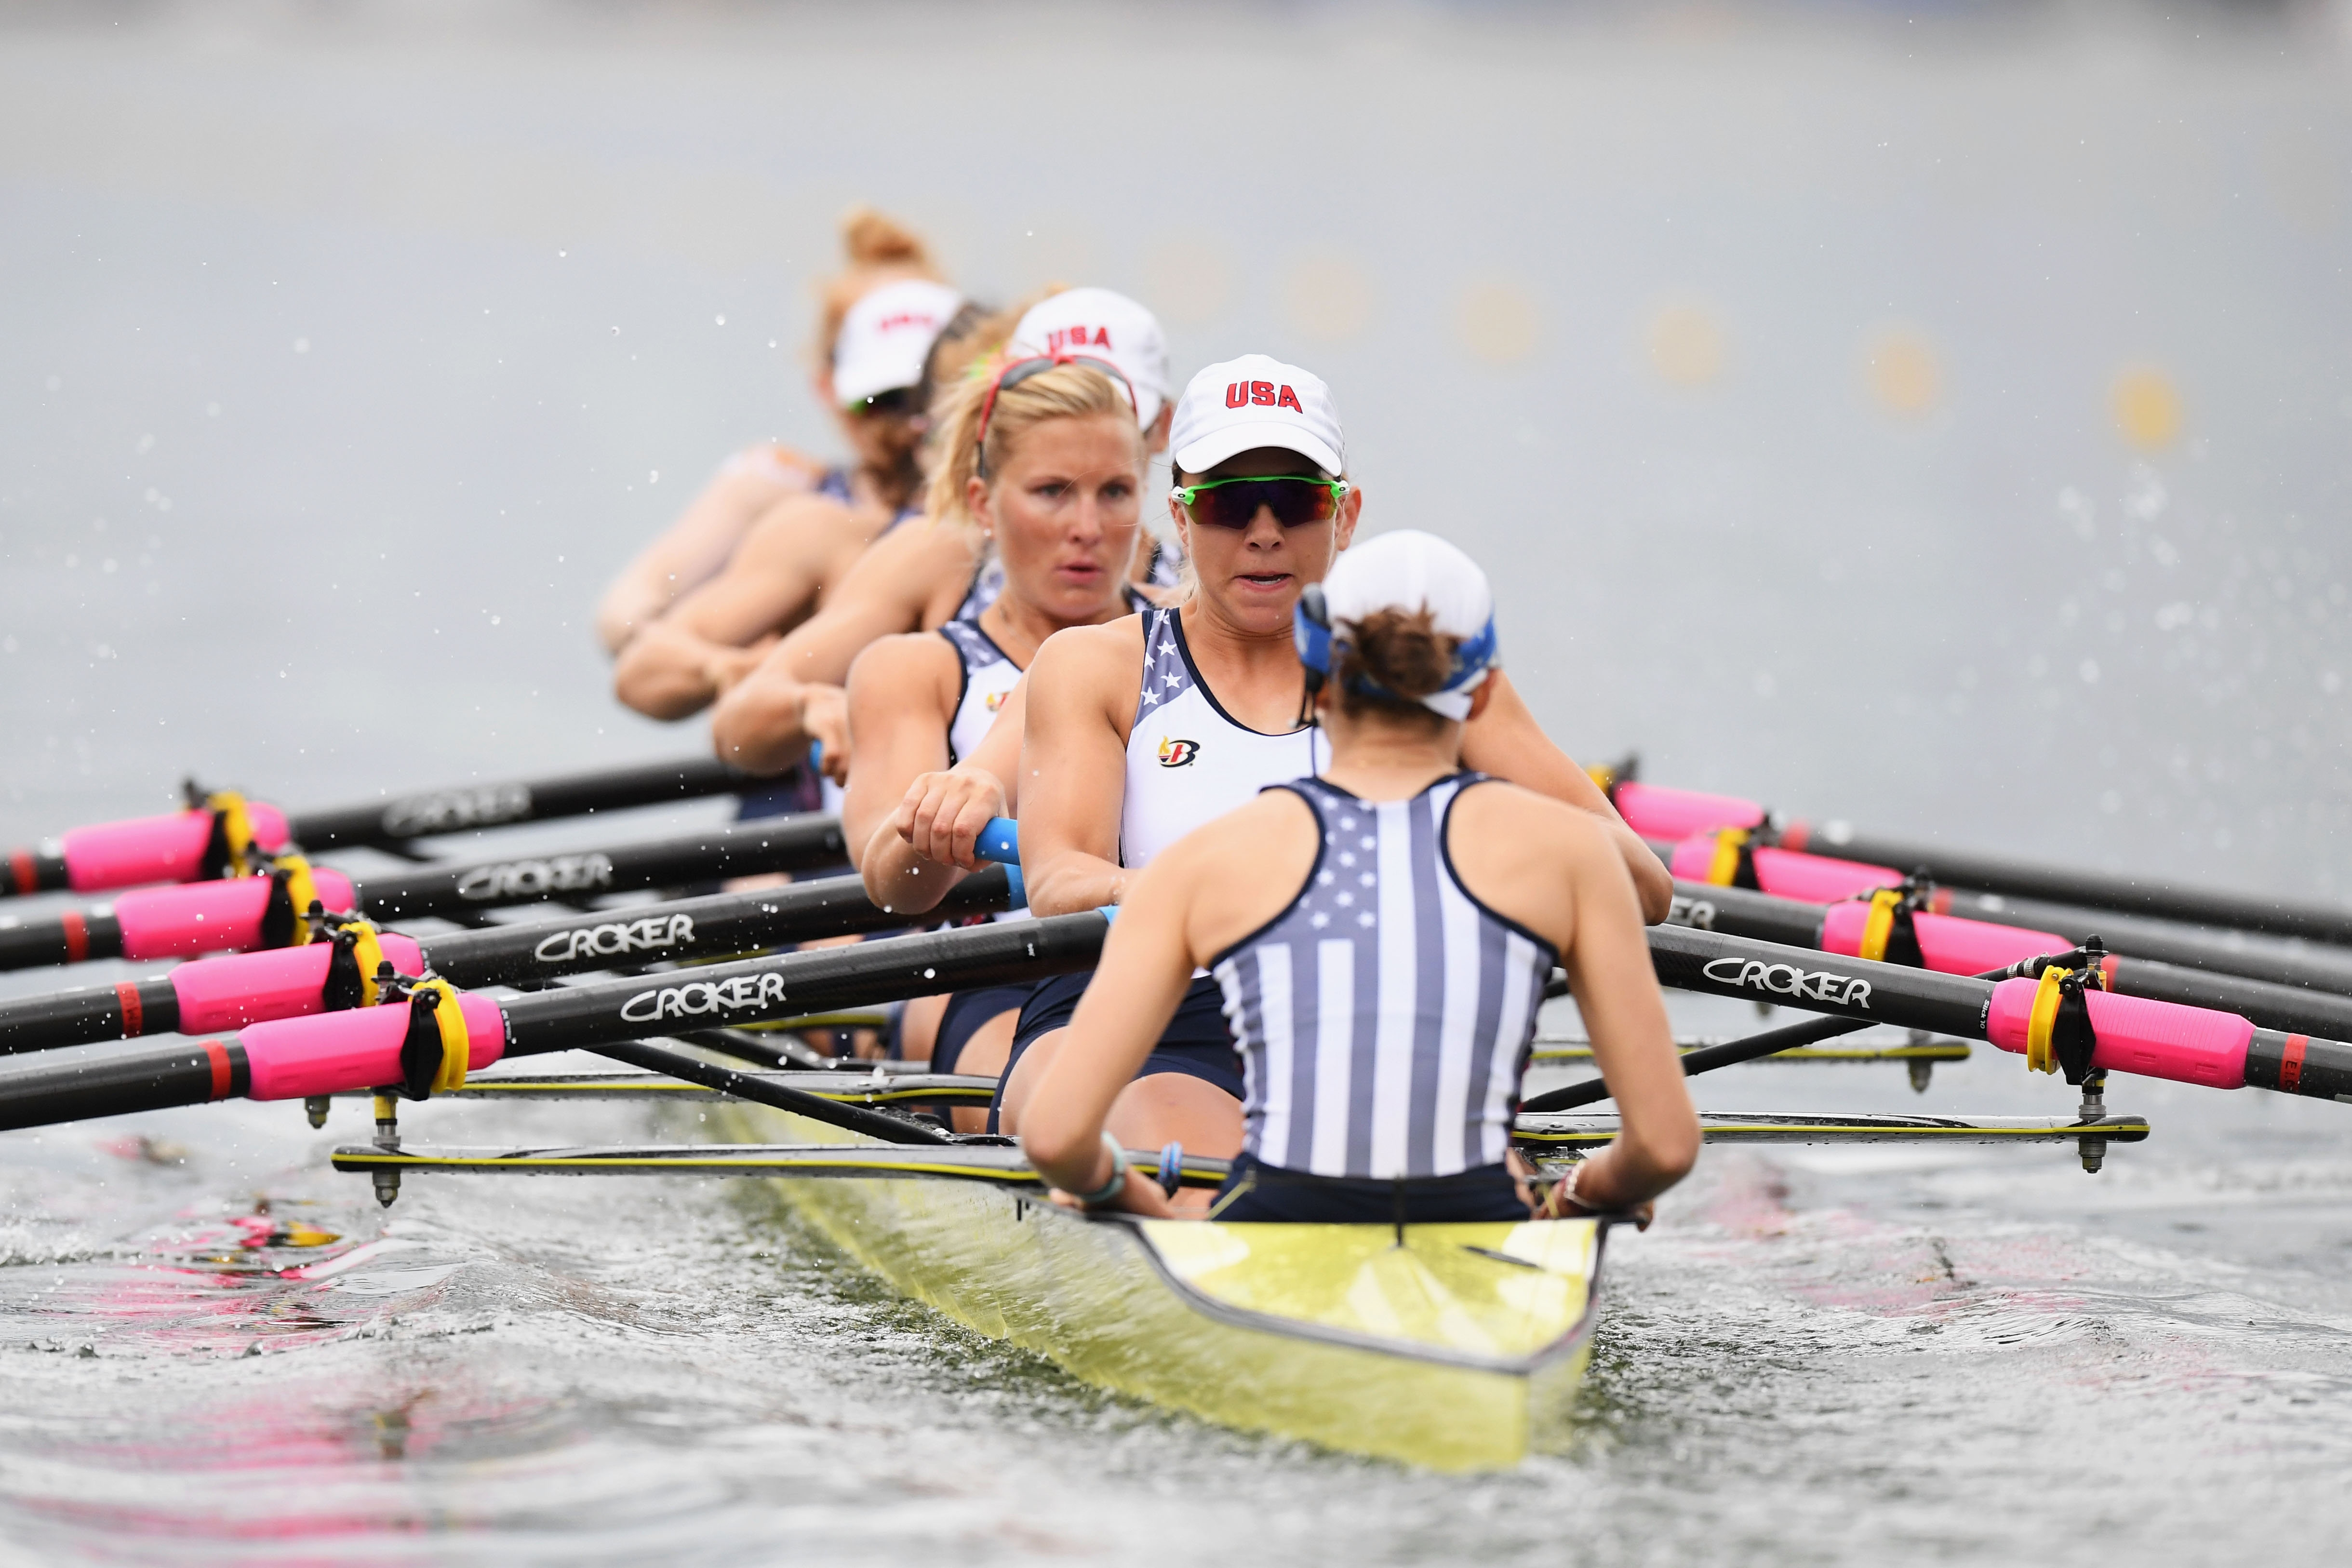 The victorious U.S. eight was more than three seconds faster than the next best crew in Monday's women's rowing qualifying heats.